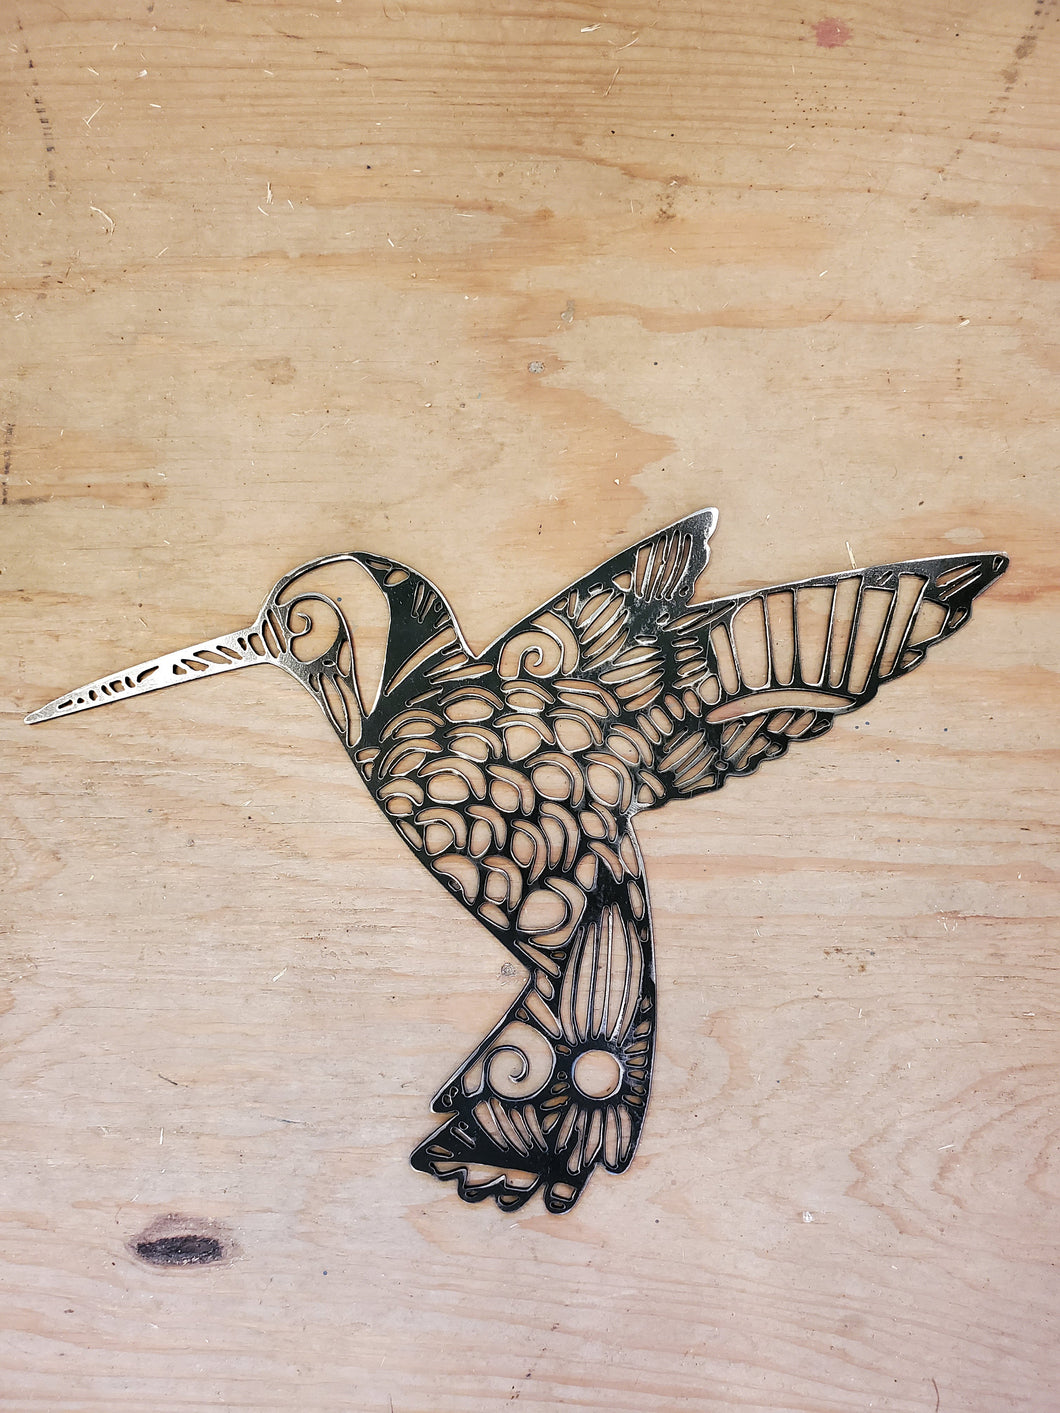 Hummingbird metal wall art - available in extra thick 10ga or sturdy 14ga steel - 16